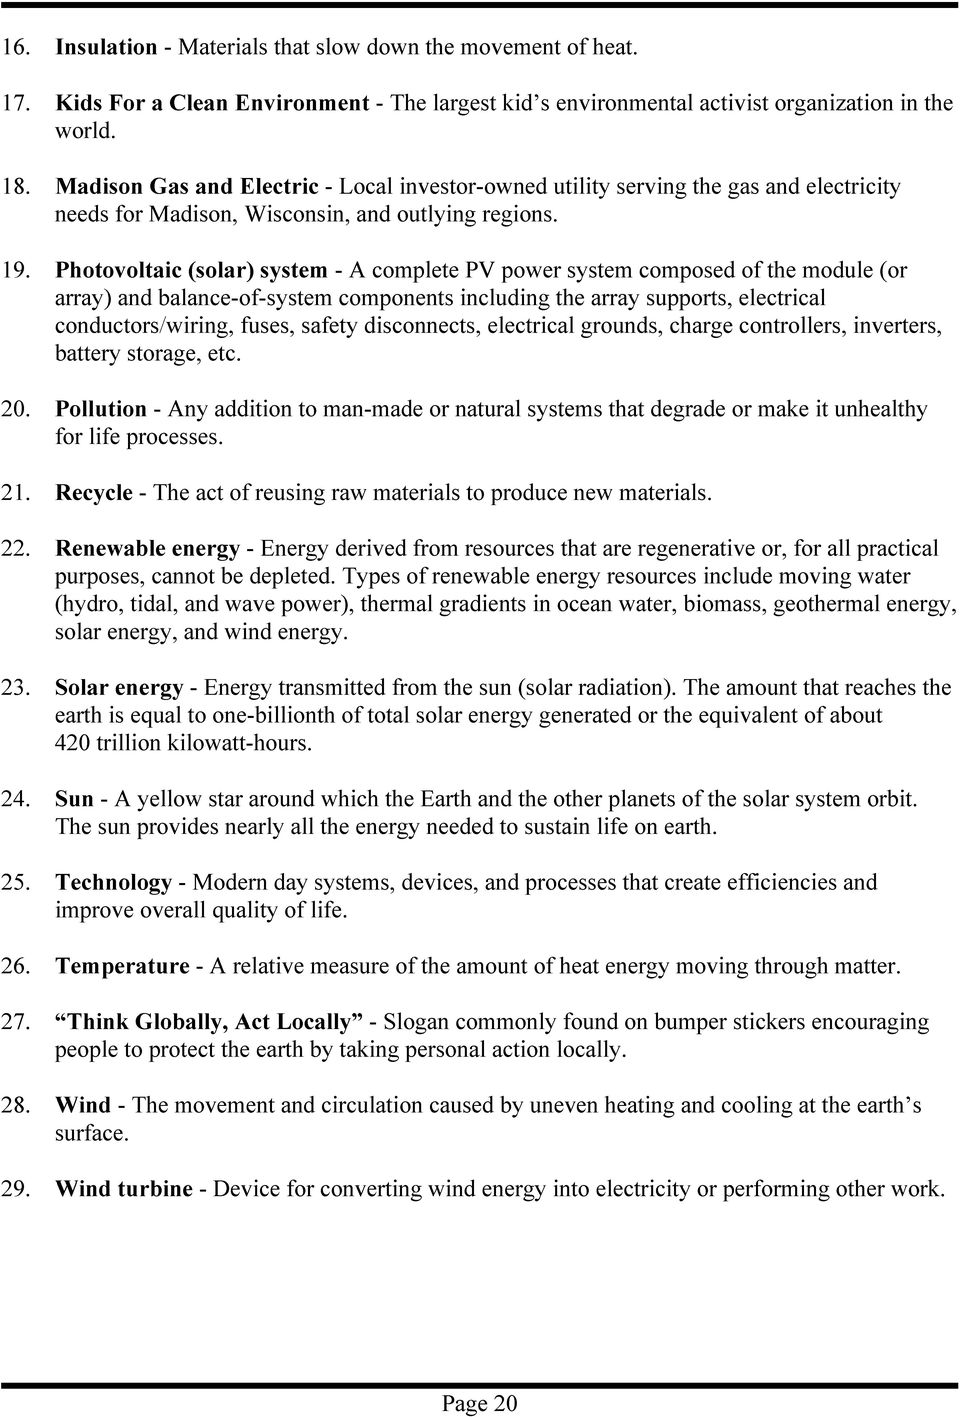 Photovoltaic (solar) system - A complete PV power system composed of the module (or array) and balance-of-system components including the array supports, electrical conductors/wiring, fuses, safety